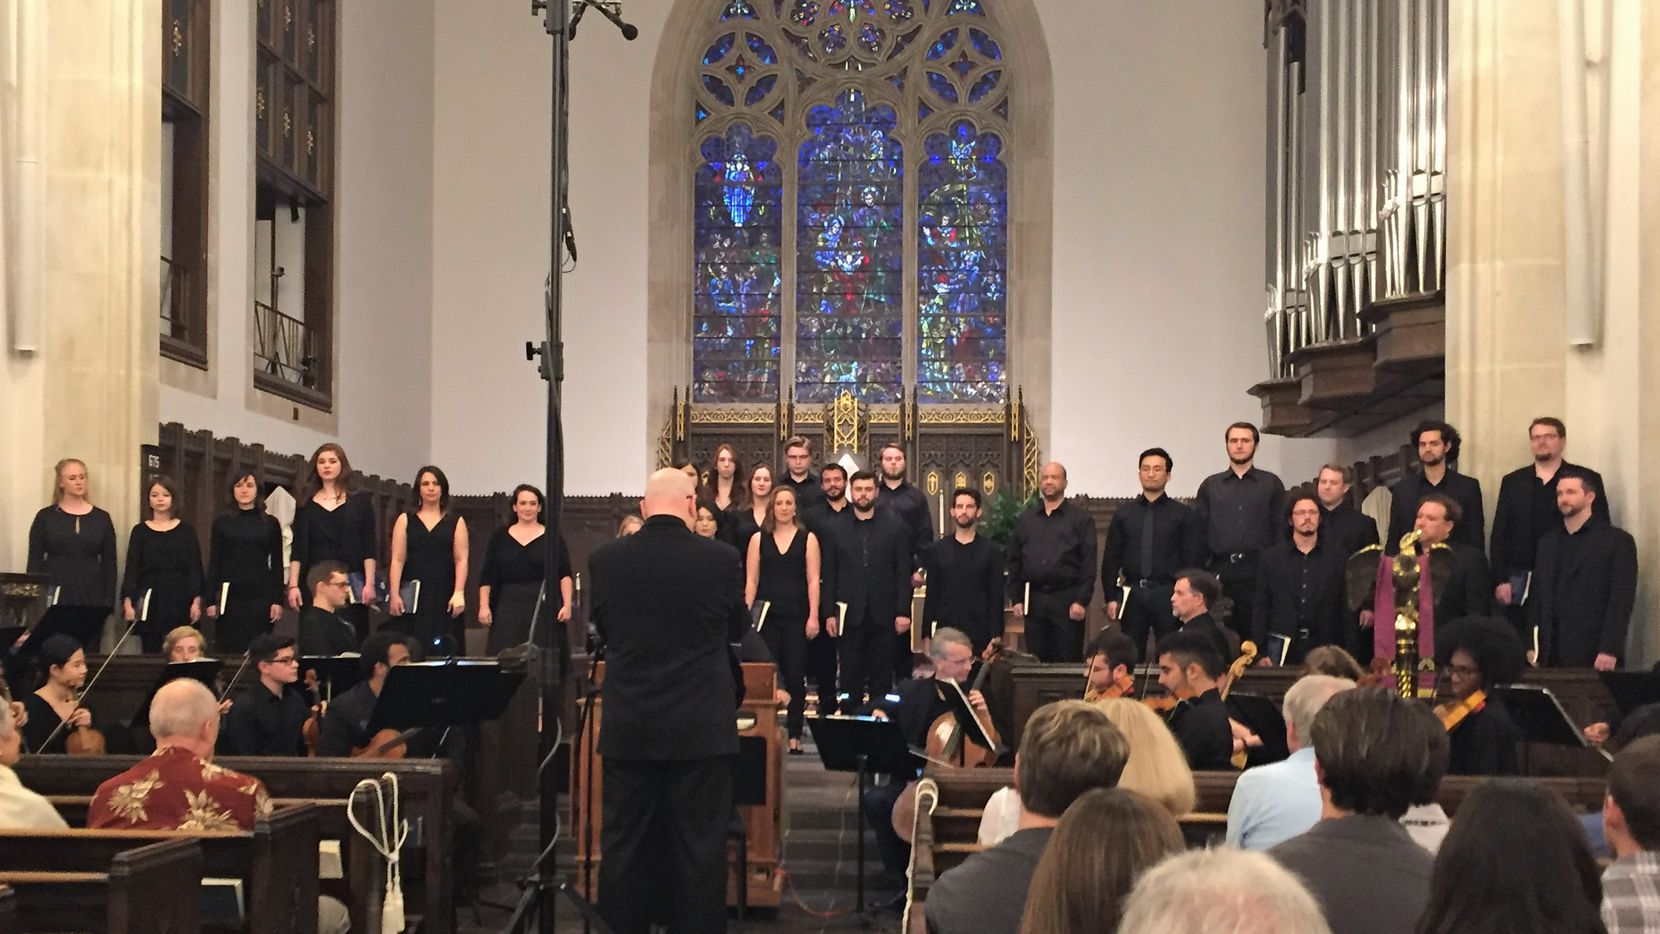 The UNT Baroque Orchestra tunes before a performance of the Bach St. John Passion, led by Richard Sparks, with the UNT Collegium Singers, at Episcopal Church of the Incarnation in Dallas, on April 1, 2017. (Scott Cantrell/Special Contributor)